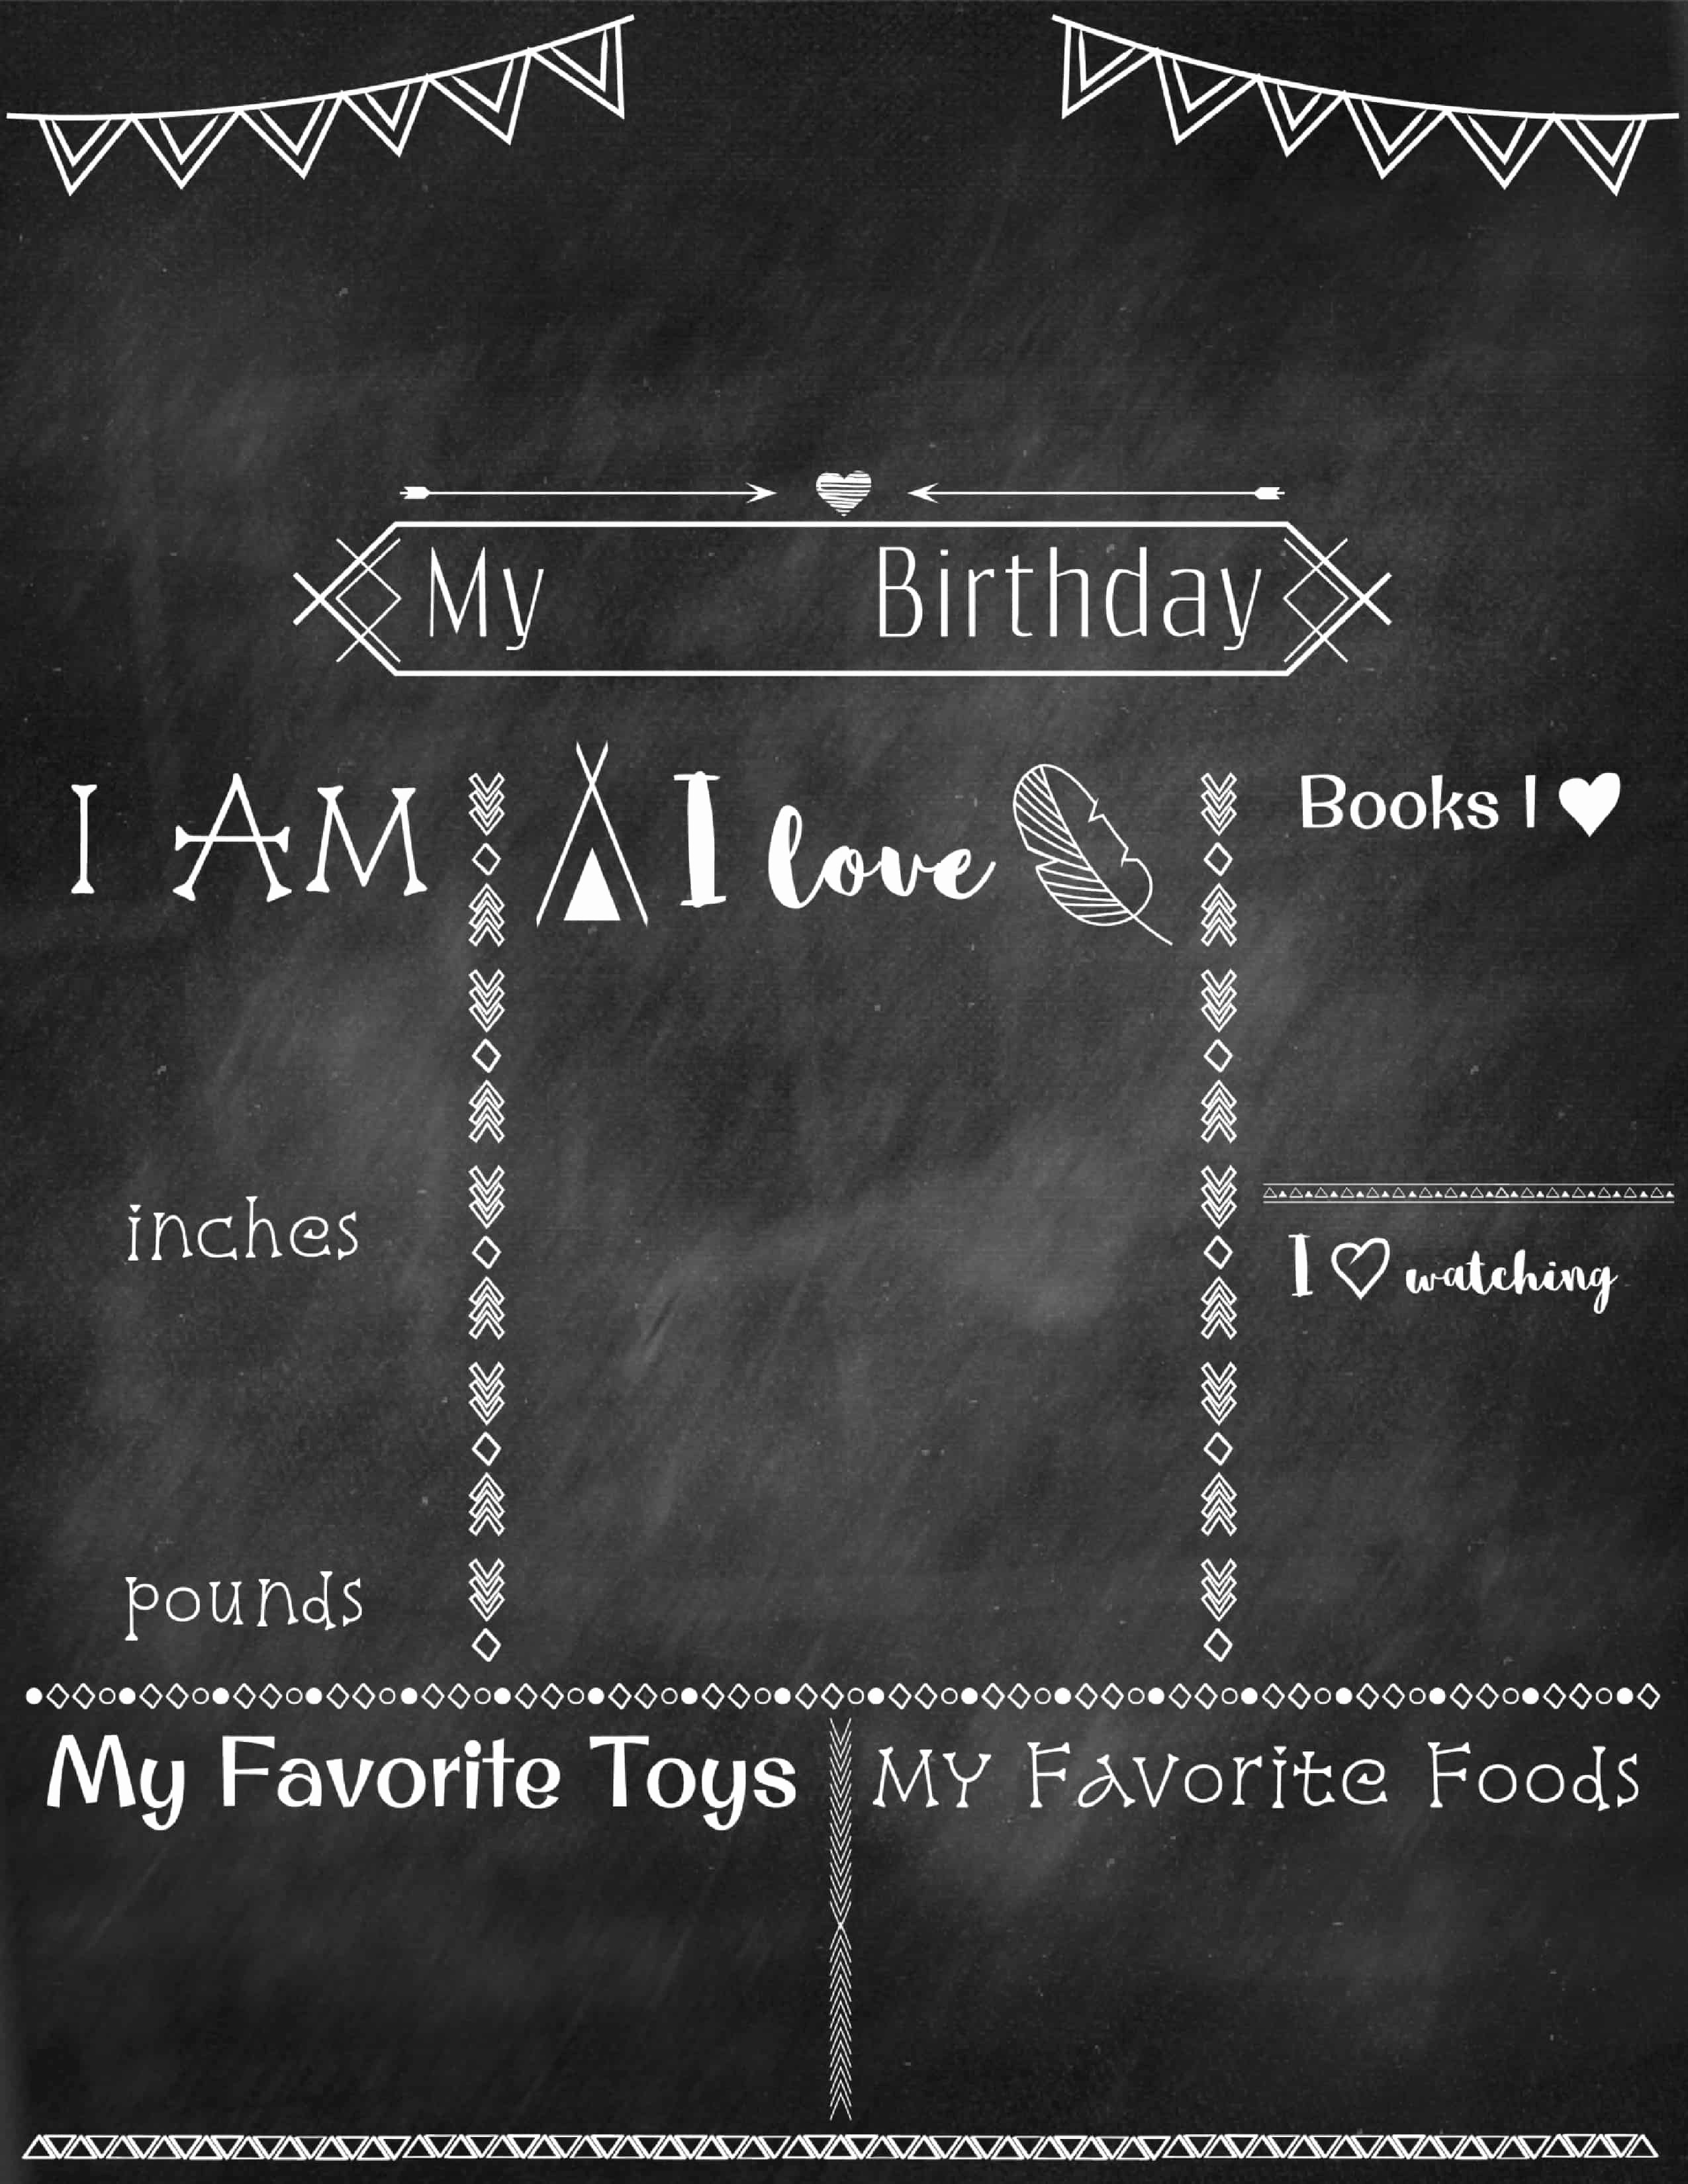 Birthday Chalkboard Template Lovely Birthday Poster Template Free with Step by Step Tutorial